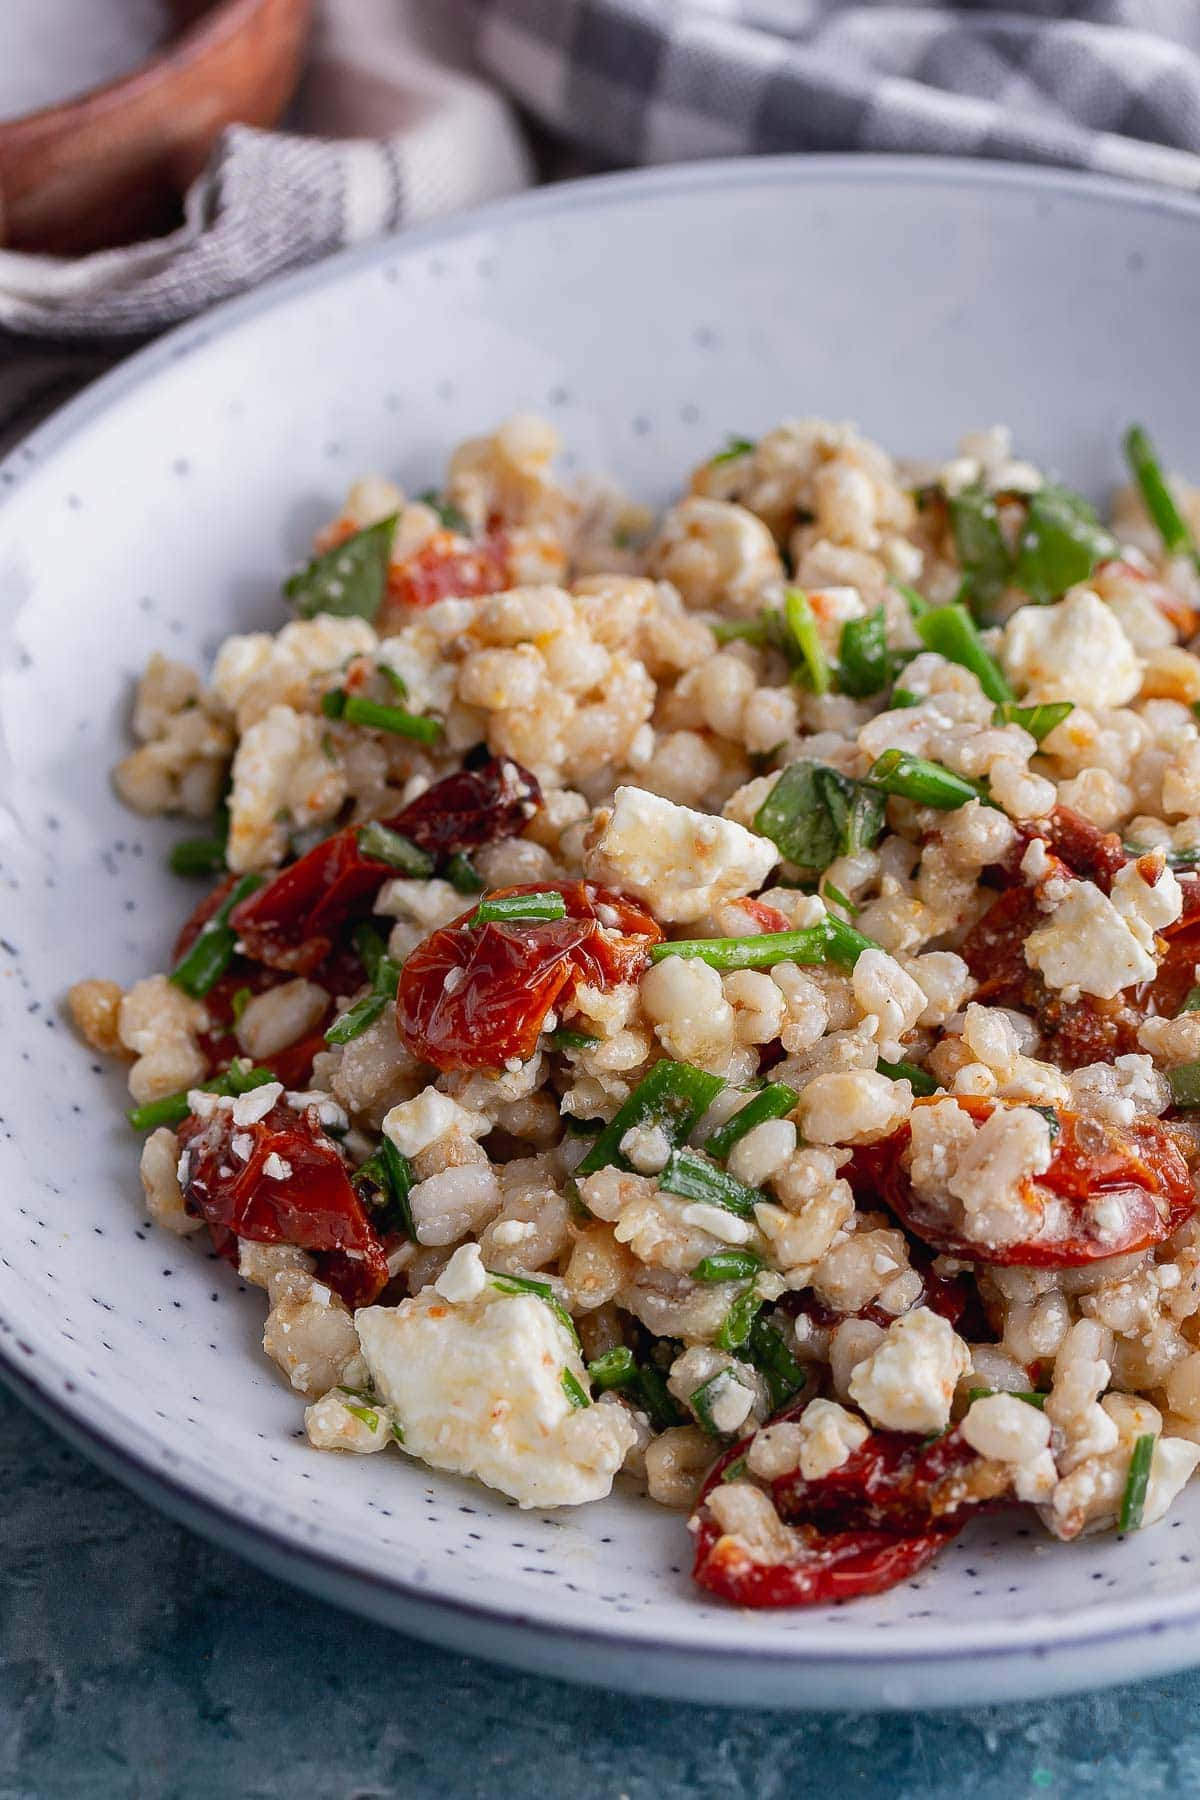 Close up of pearl barley with tomato and herbs in a blue bowl